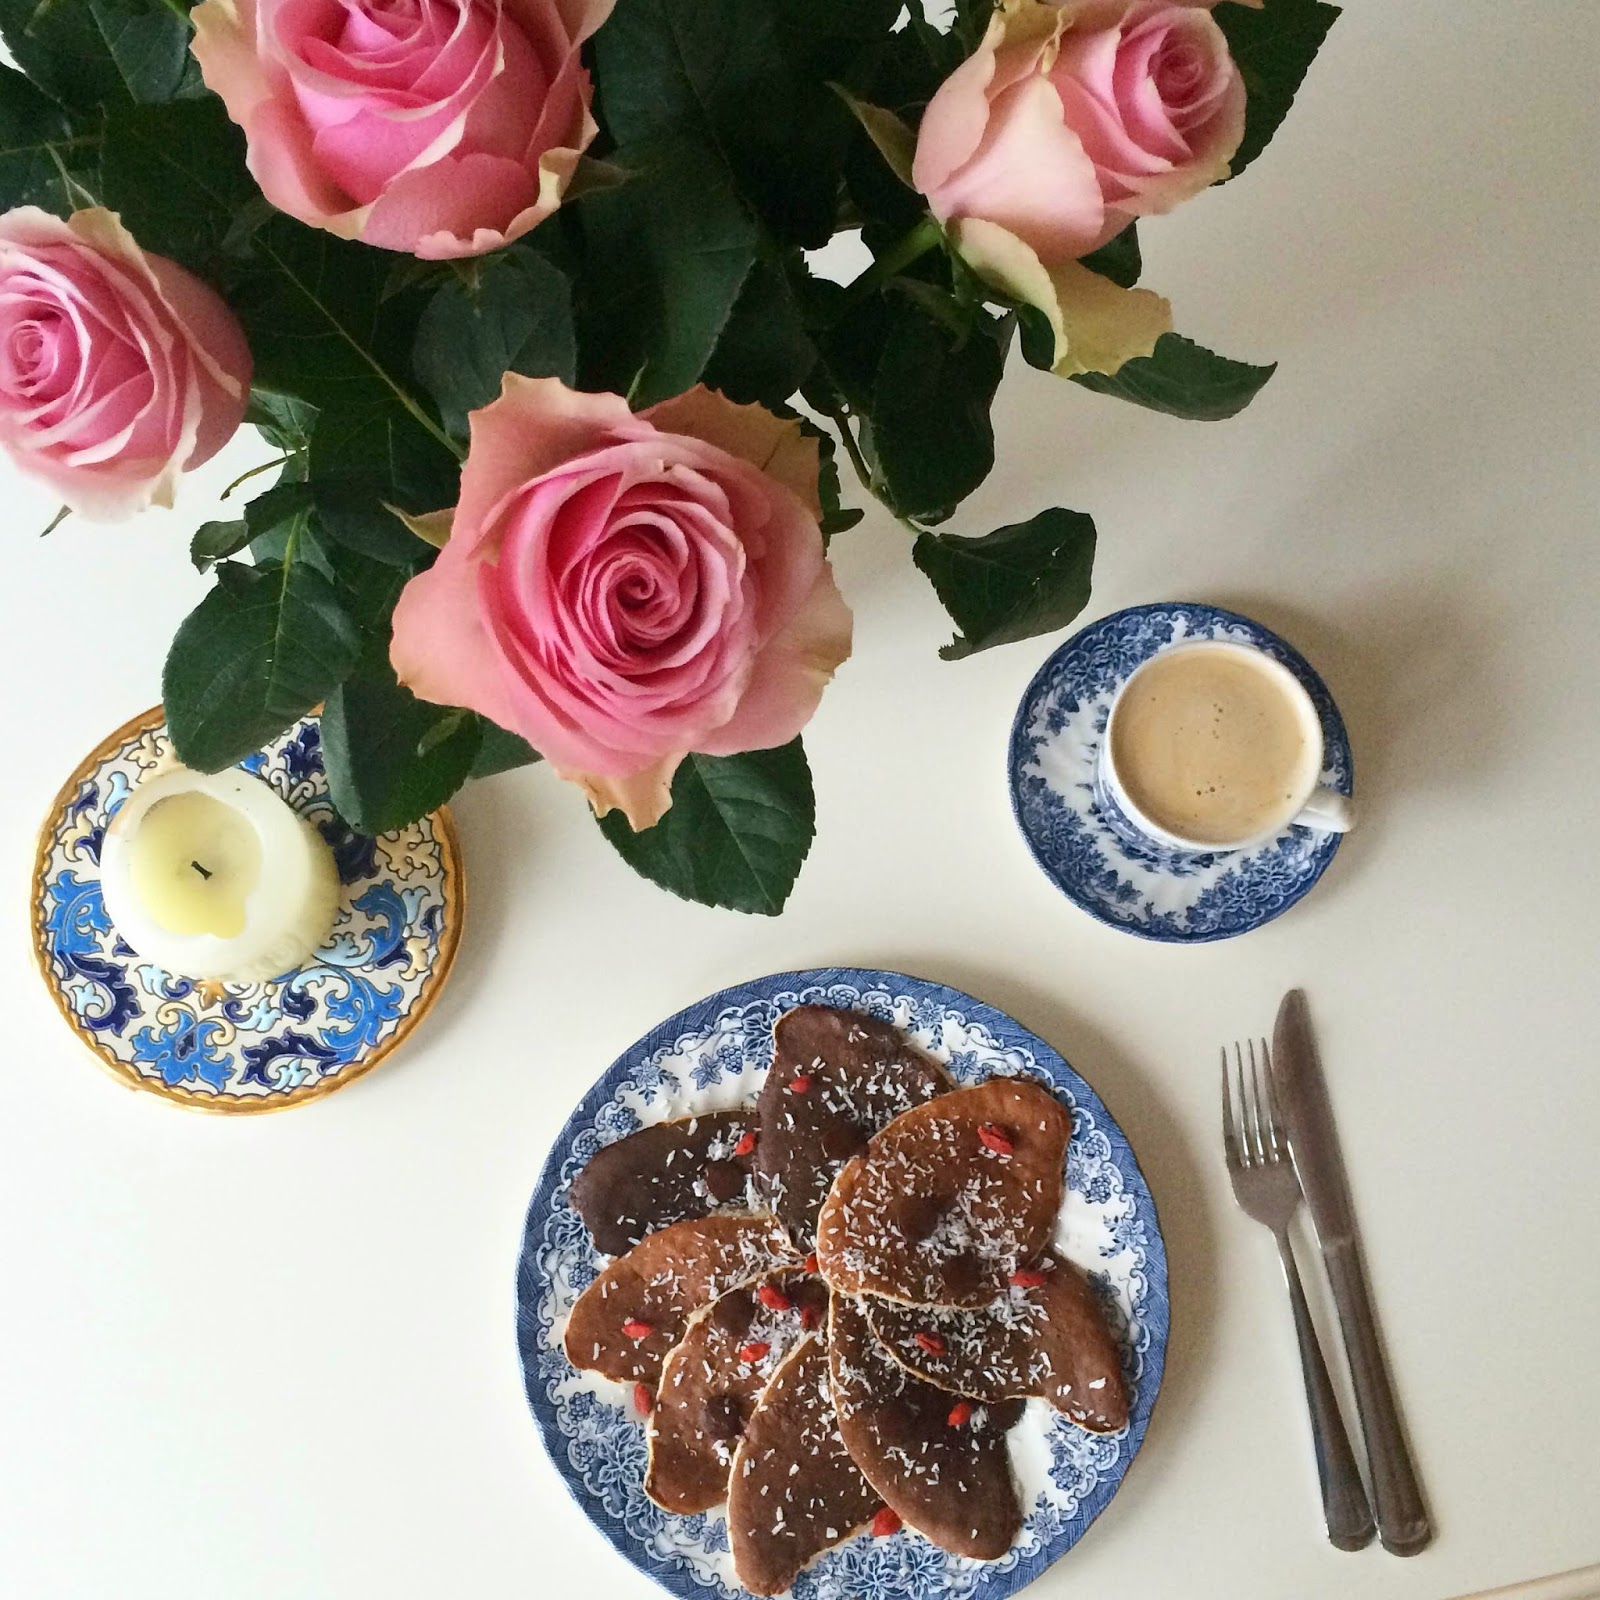 healthy-breakfast-banana-pancakes-pink-roses